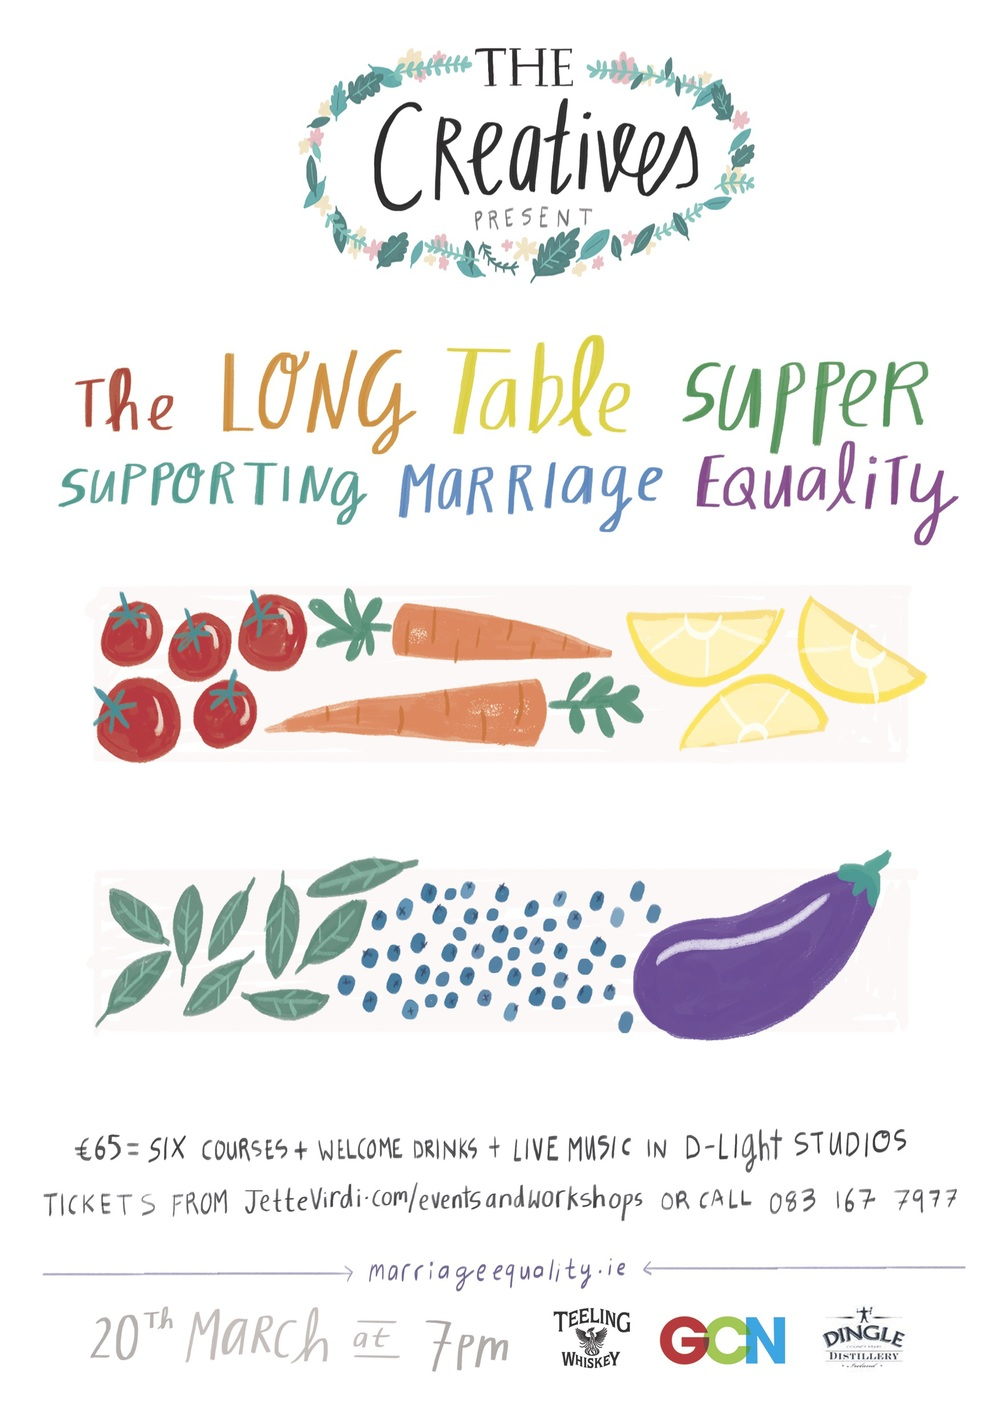 Long Table Supper in aid of Marriage Equality